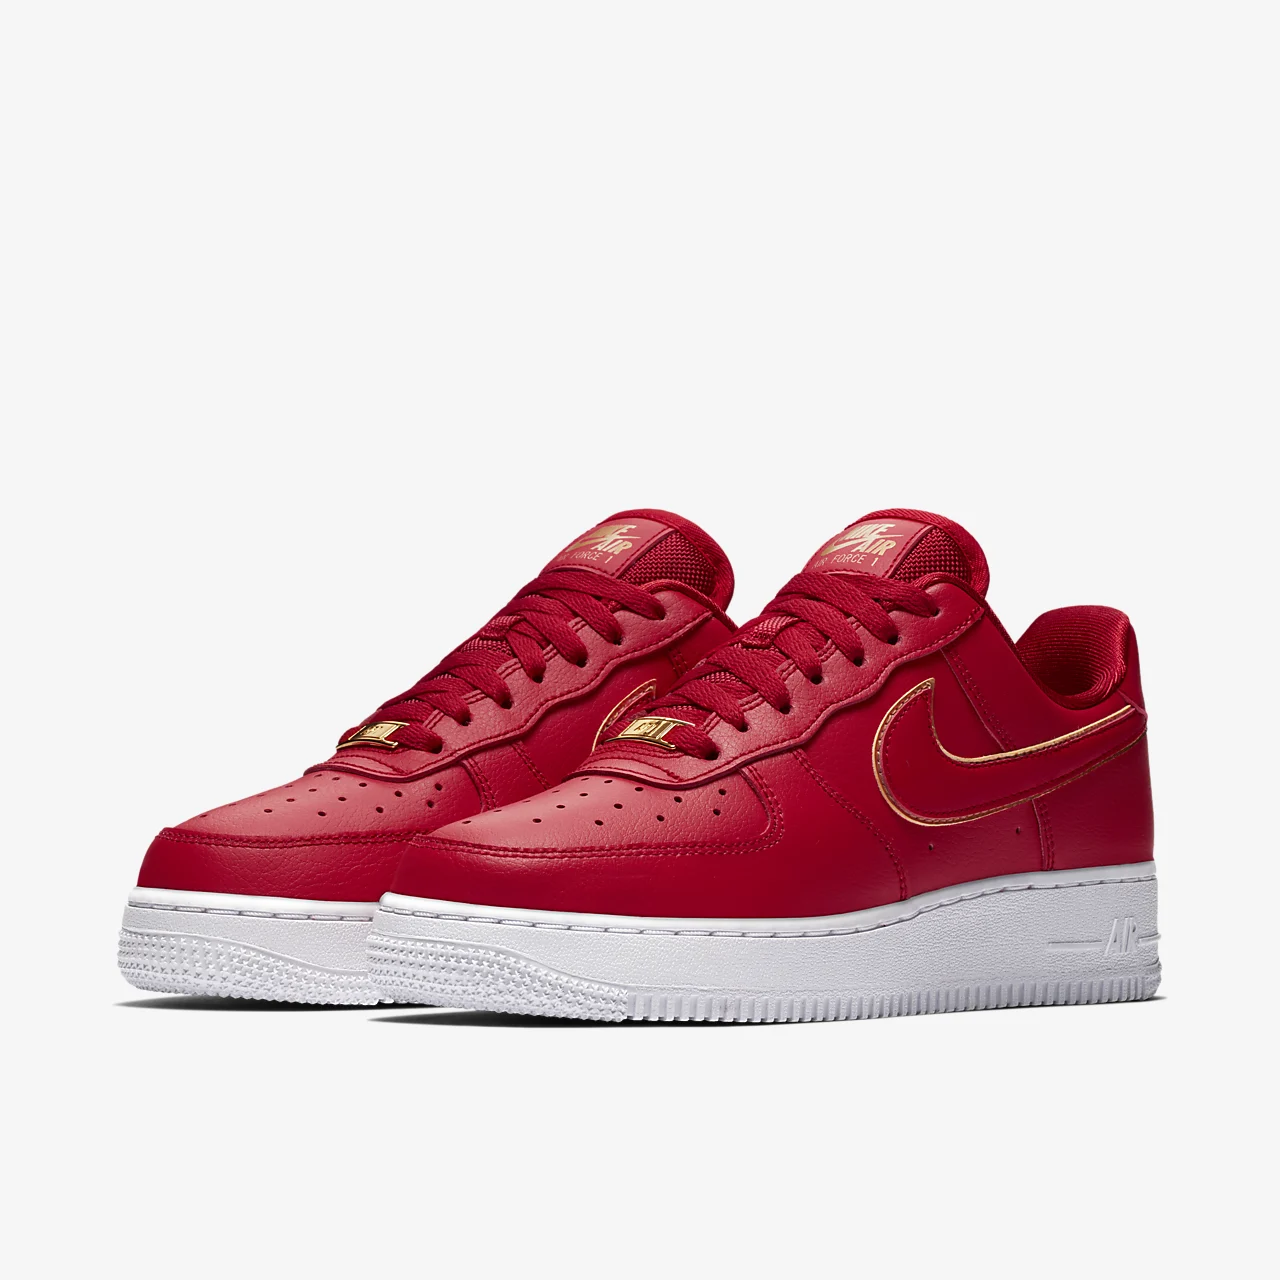 유럽직배송 나이키 NIKE Nike Air Force 1 '07 Essential Women's Shoe AO2132-602